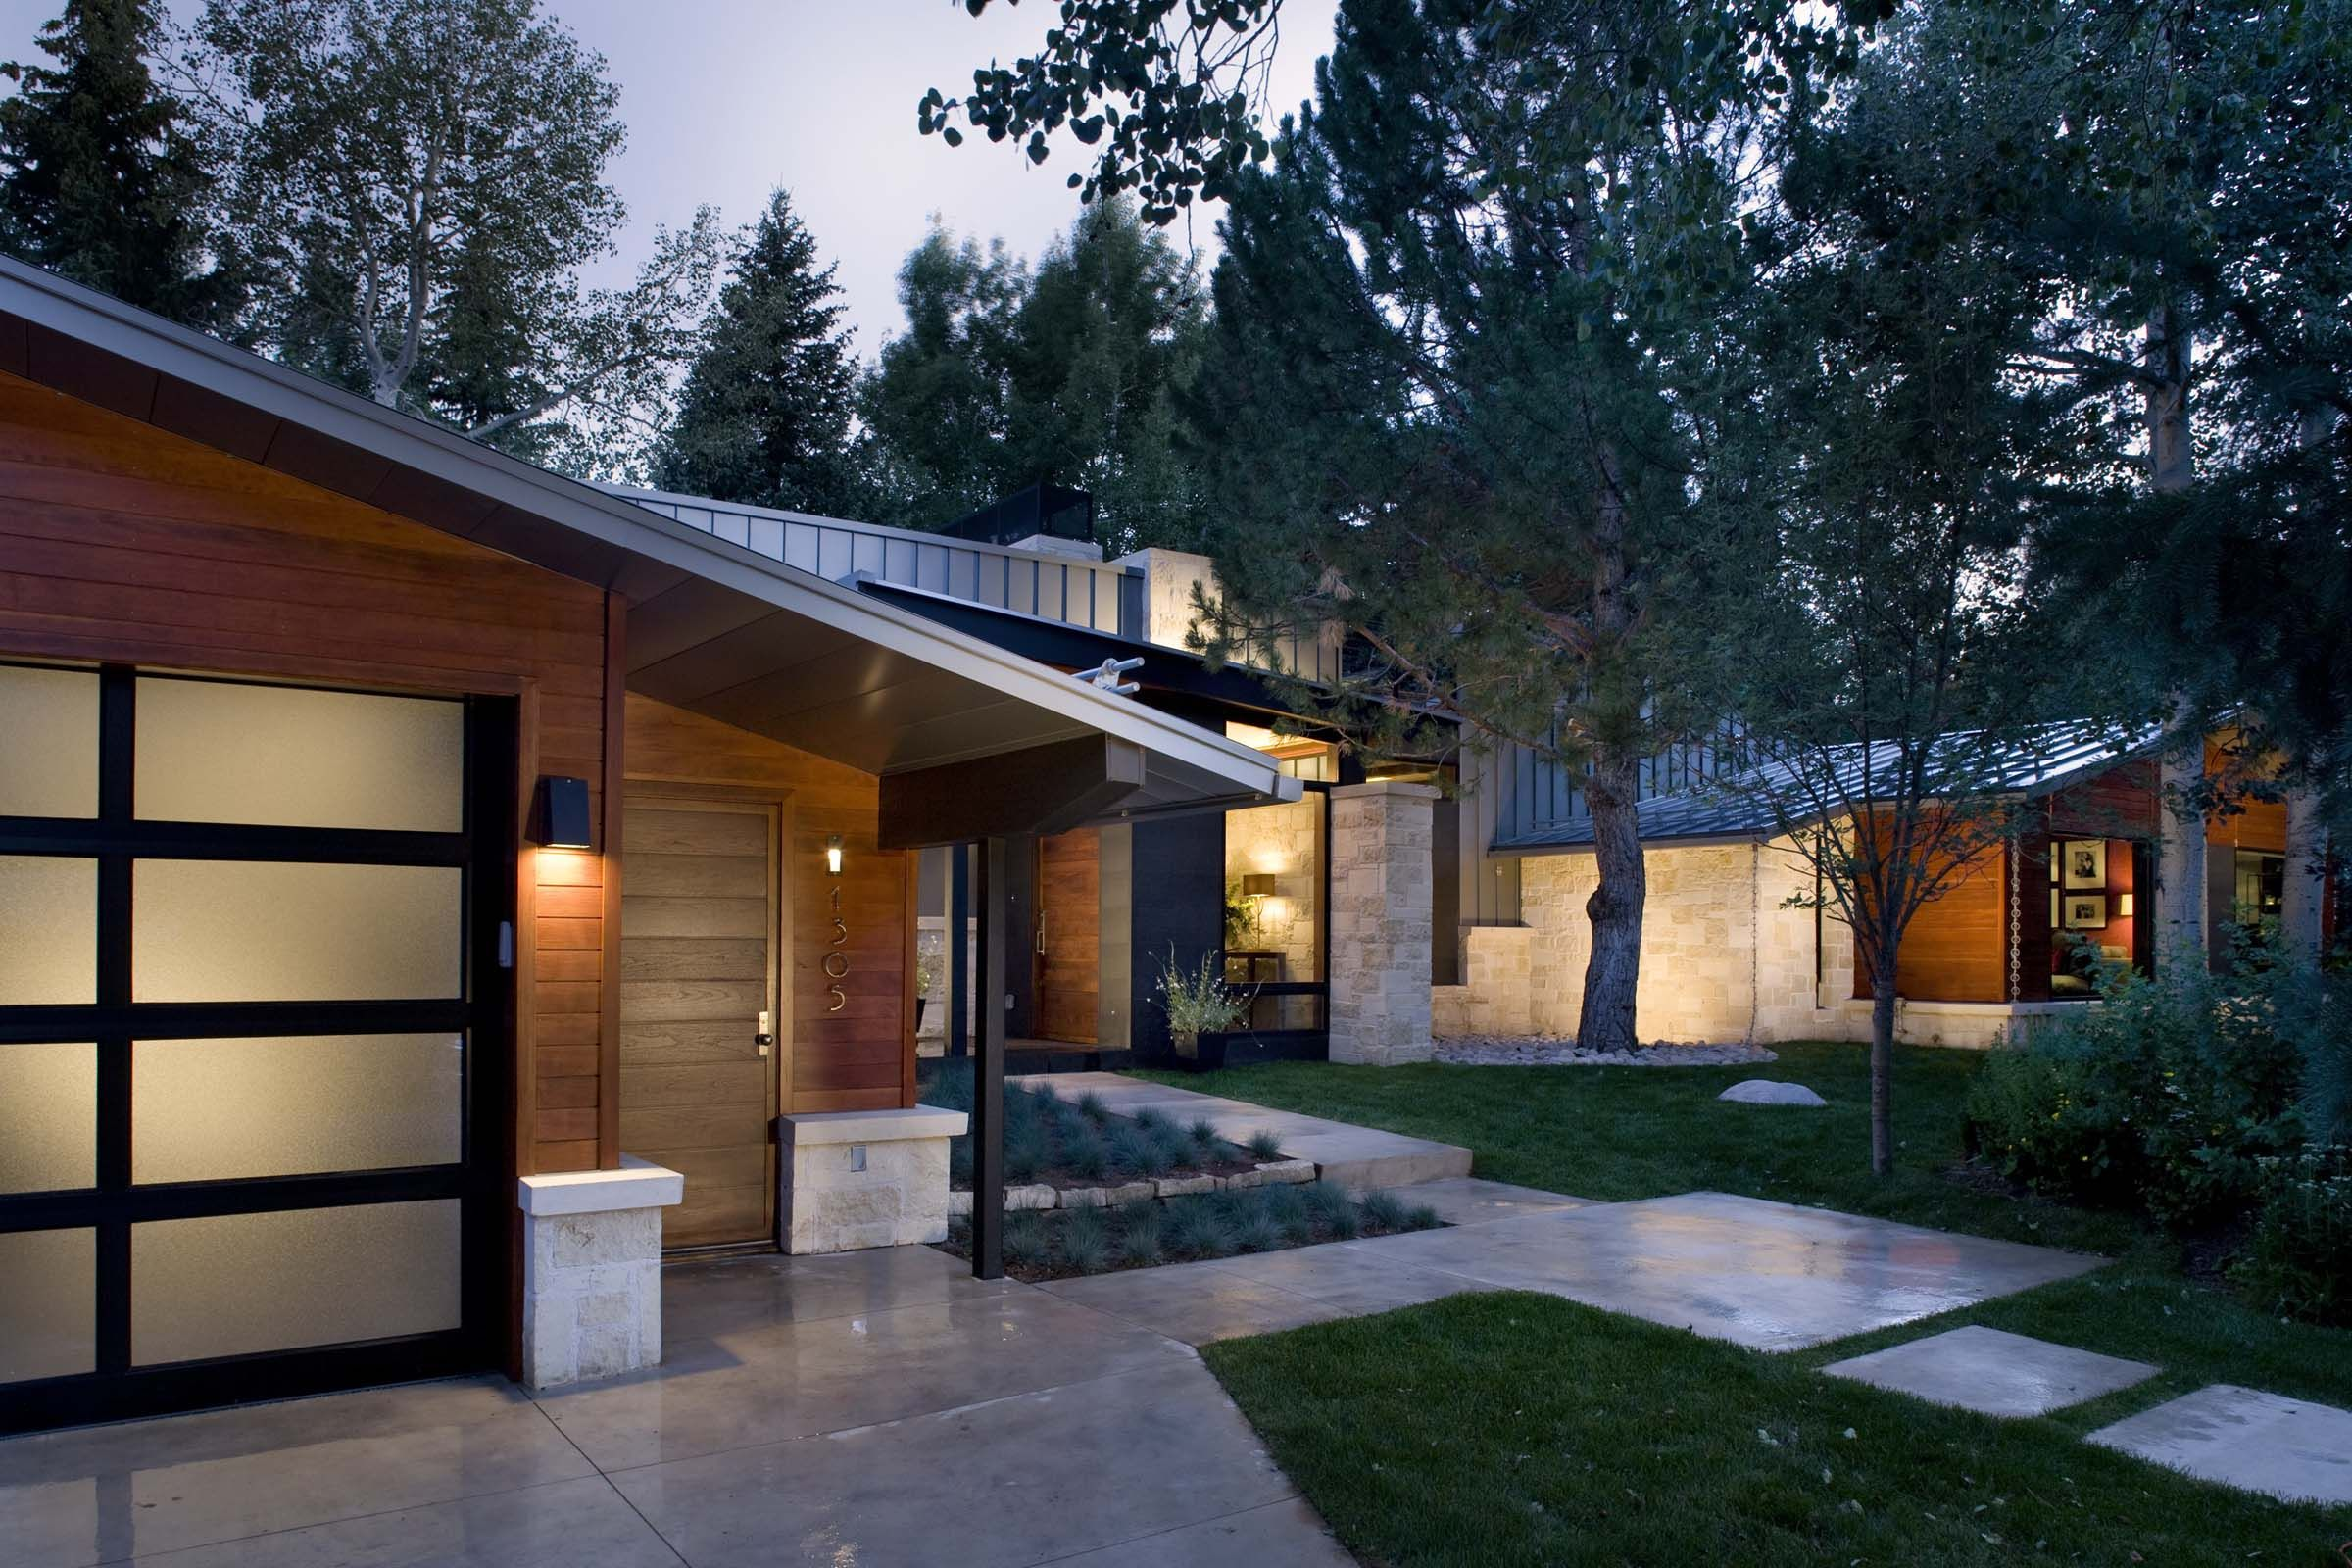 Mid century modern home exterior - Mid Century Ranch Renovation In Aspen By Rowland Broughton